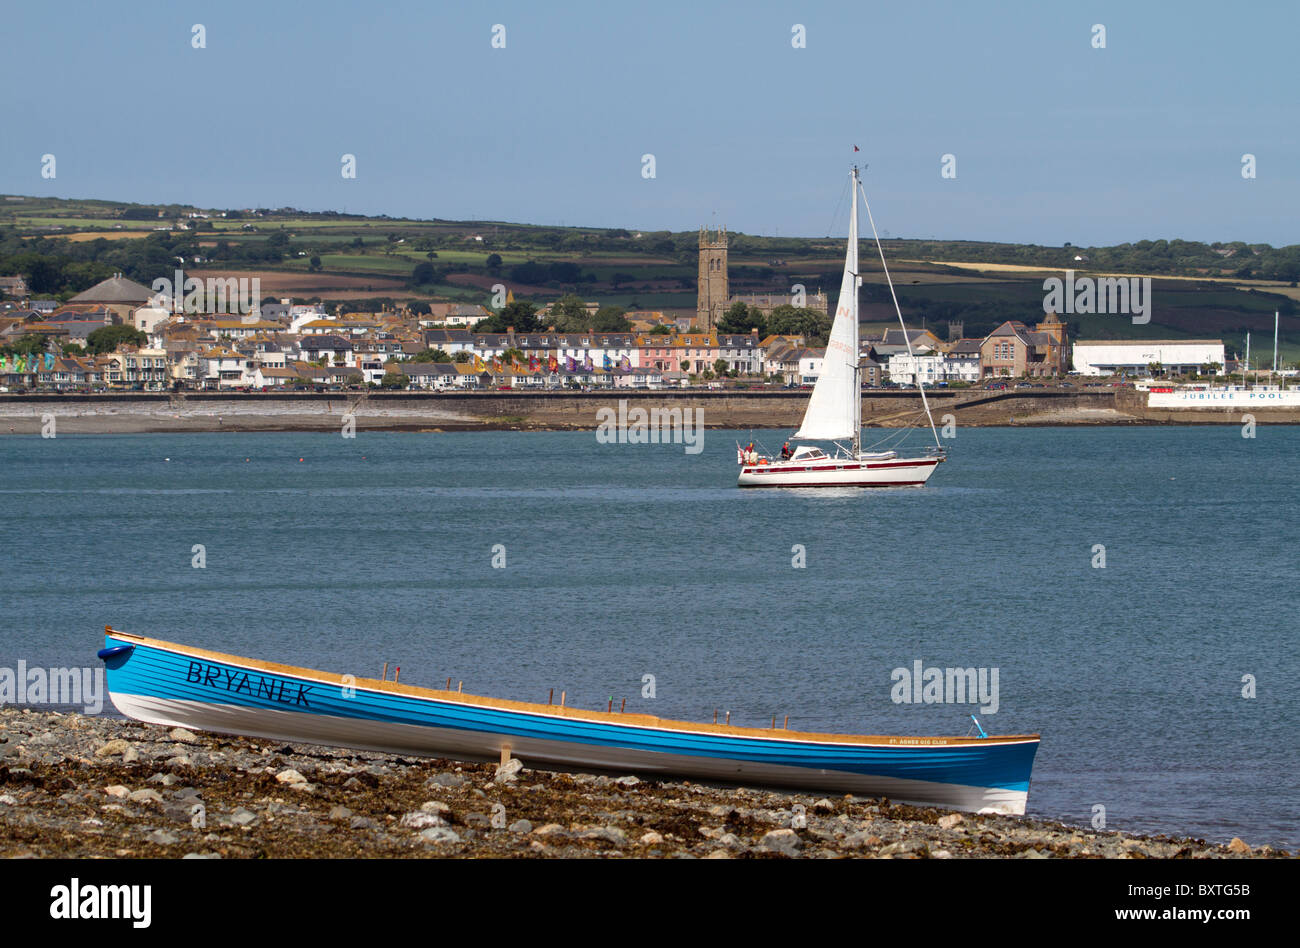 Pilot gig near Penzance, Cornwall, UK. - Stock Image